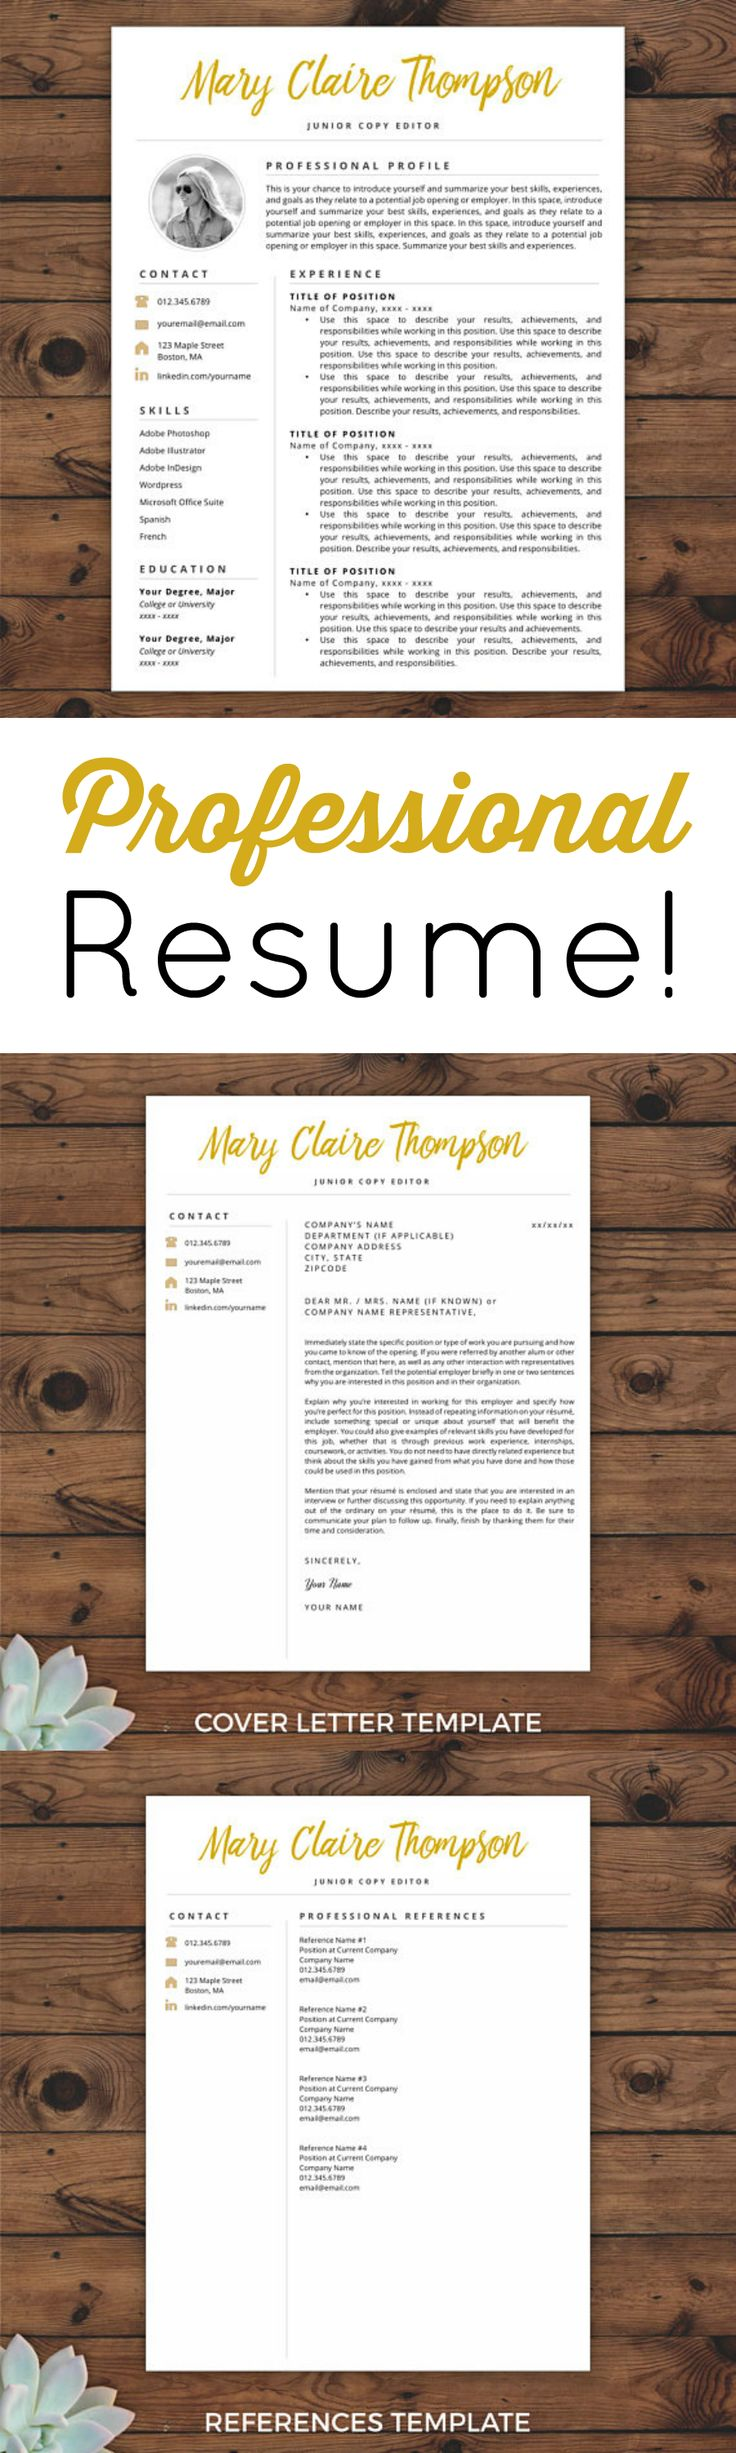 Love this stylish and professional resume set! Creative Resume Template | Resume with Photo | Instant Download Resume | Resume Icons | Resume Template Word & Pages | #ad